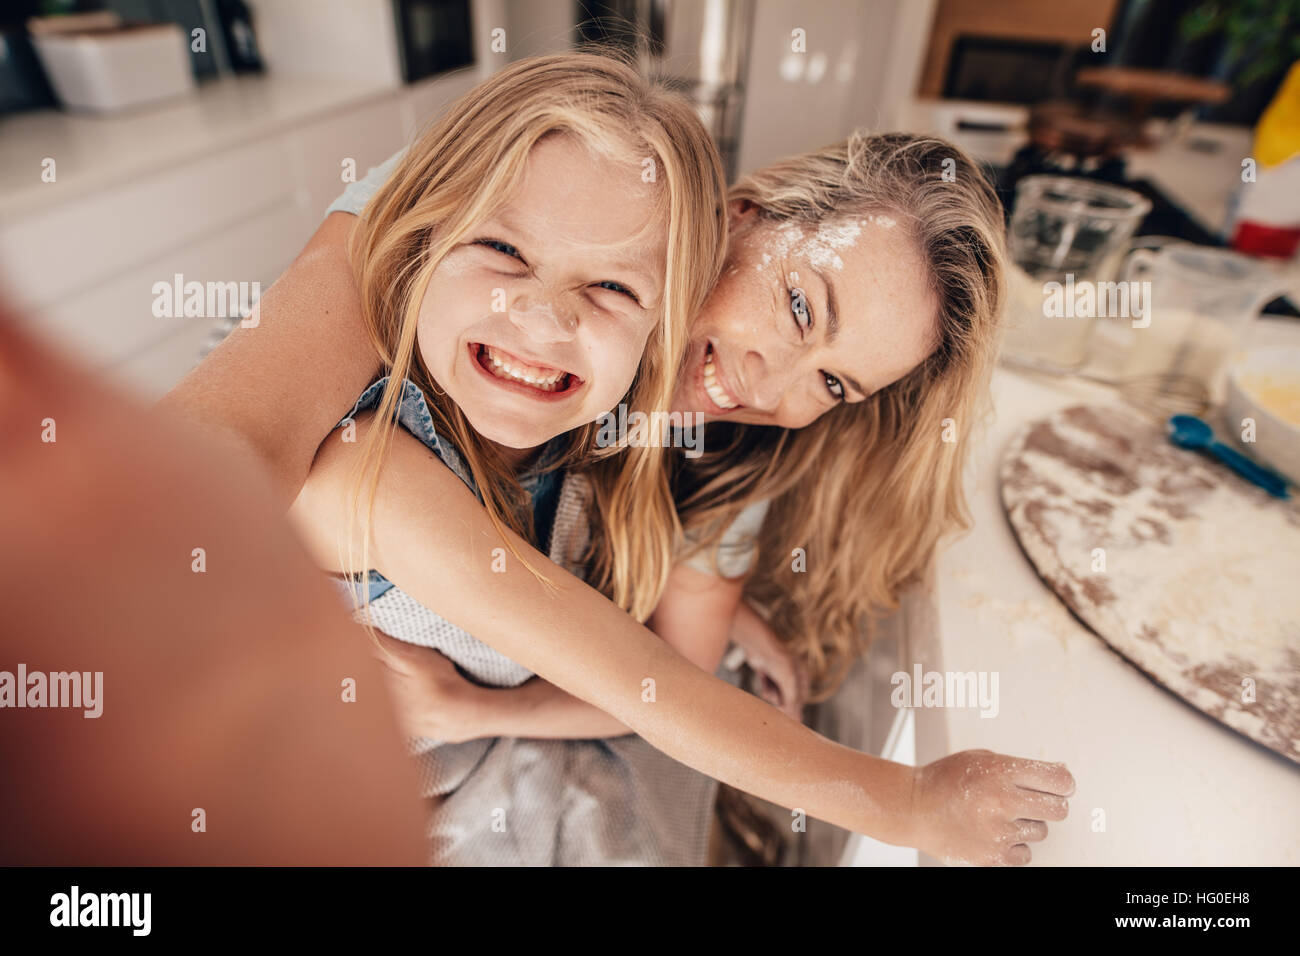 Smiling little girl and woman in kitchen taking selfie. Happy young mother and daughter cooking food. - Stock Image